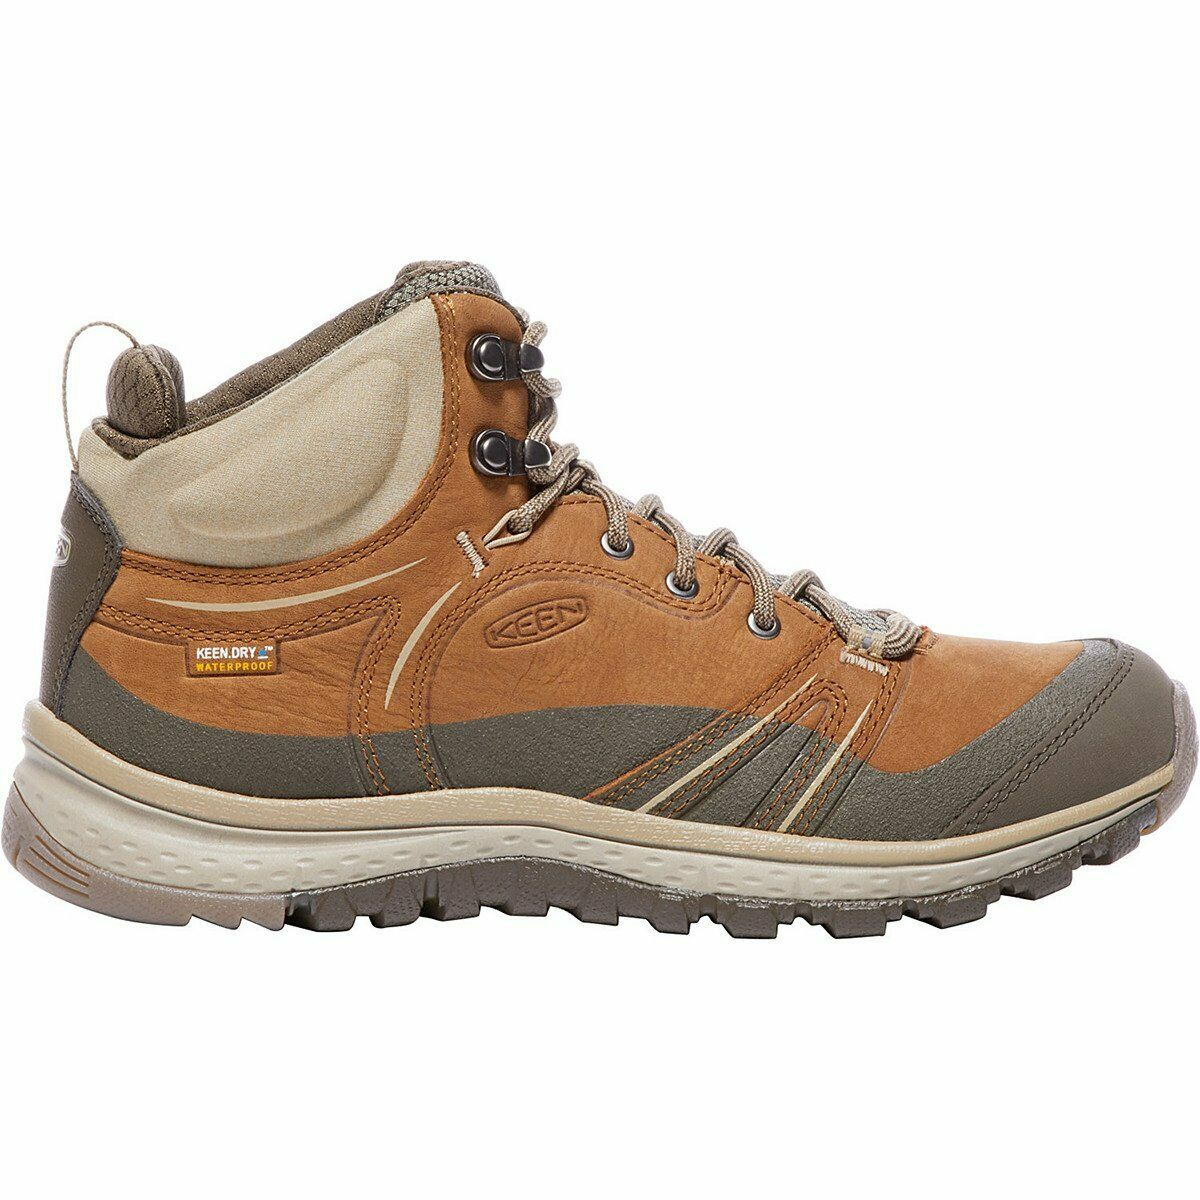 Keen Terradora Leather Mid  Wp Womens Boots Walking - Timber Cornstalk All Sizes  wholesale prices